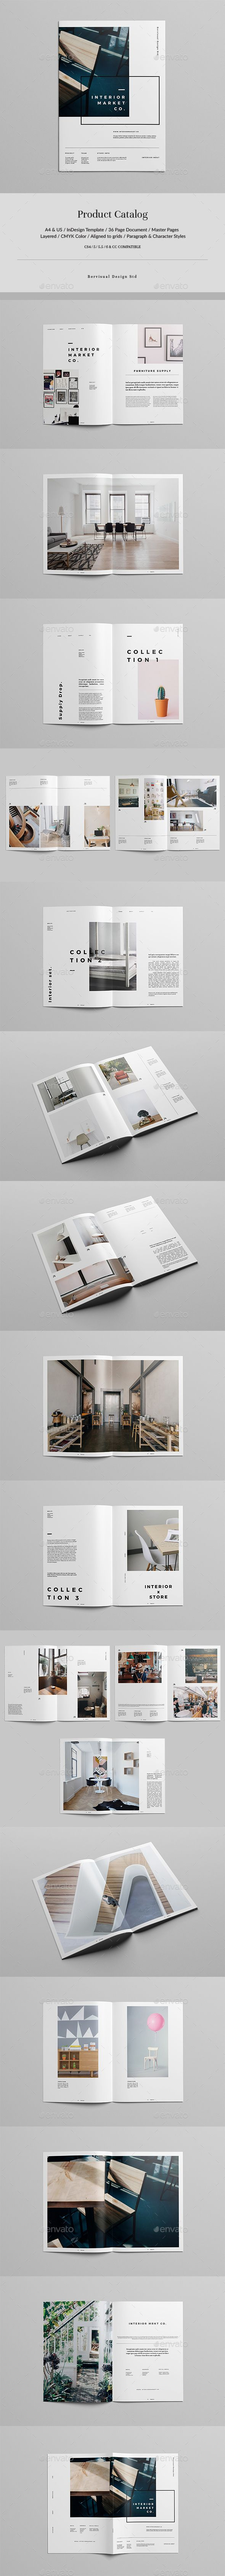 Furniture Product Catalog - #Catalogs #Brochures Download here: https://graphicriver.net/item/product-catalogue/19265747?ref=alena994